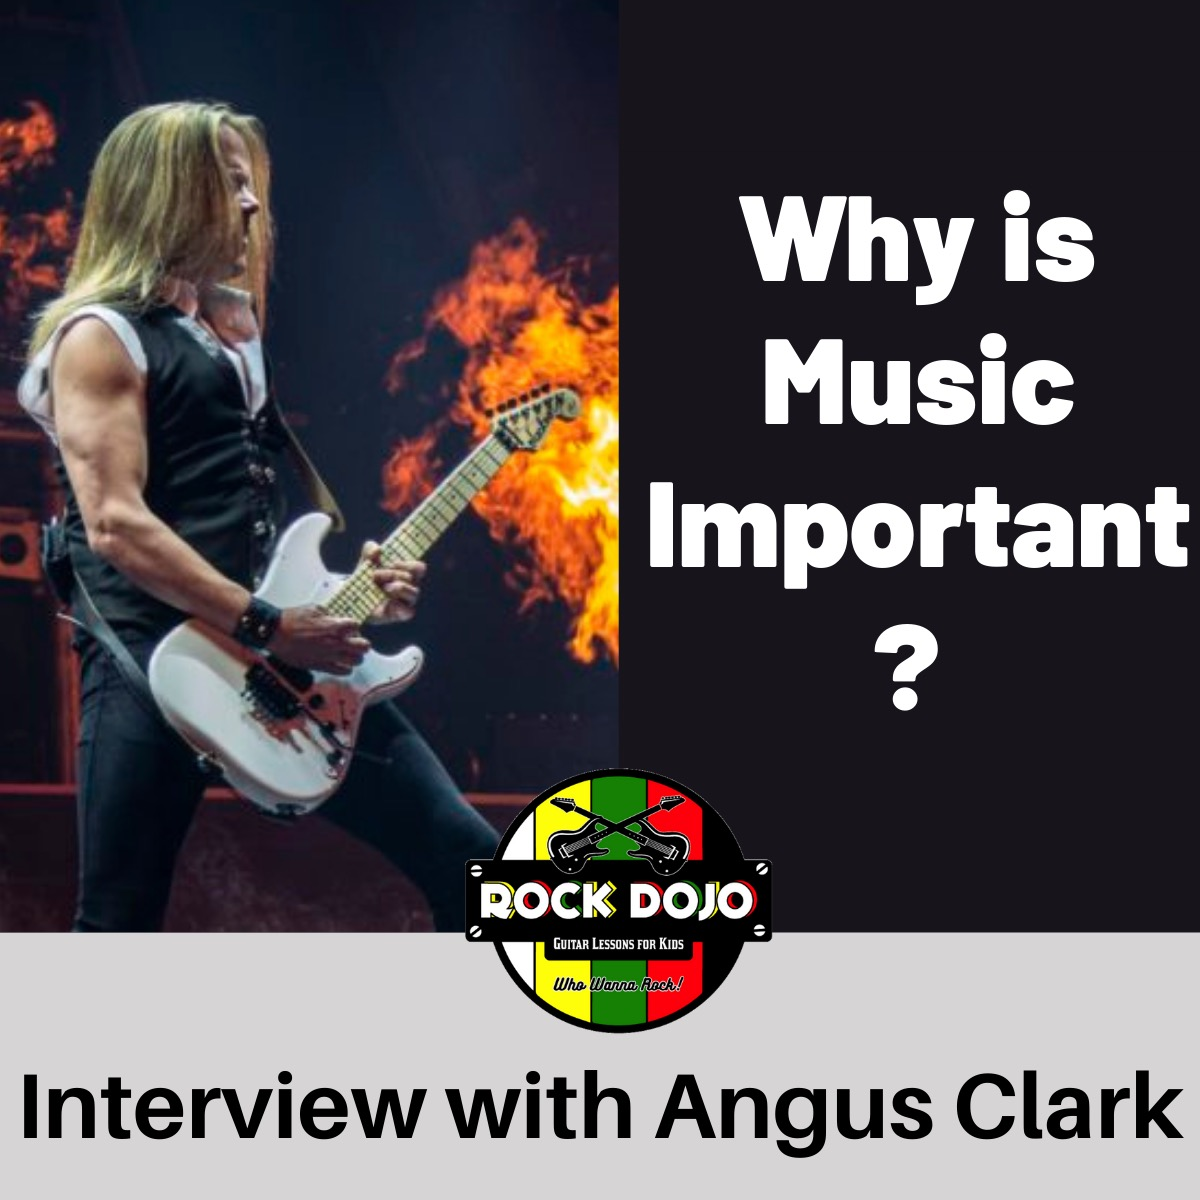 Why is Music Important? Interview with Angus Clark